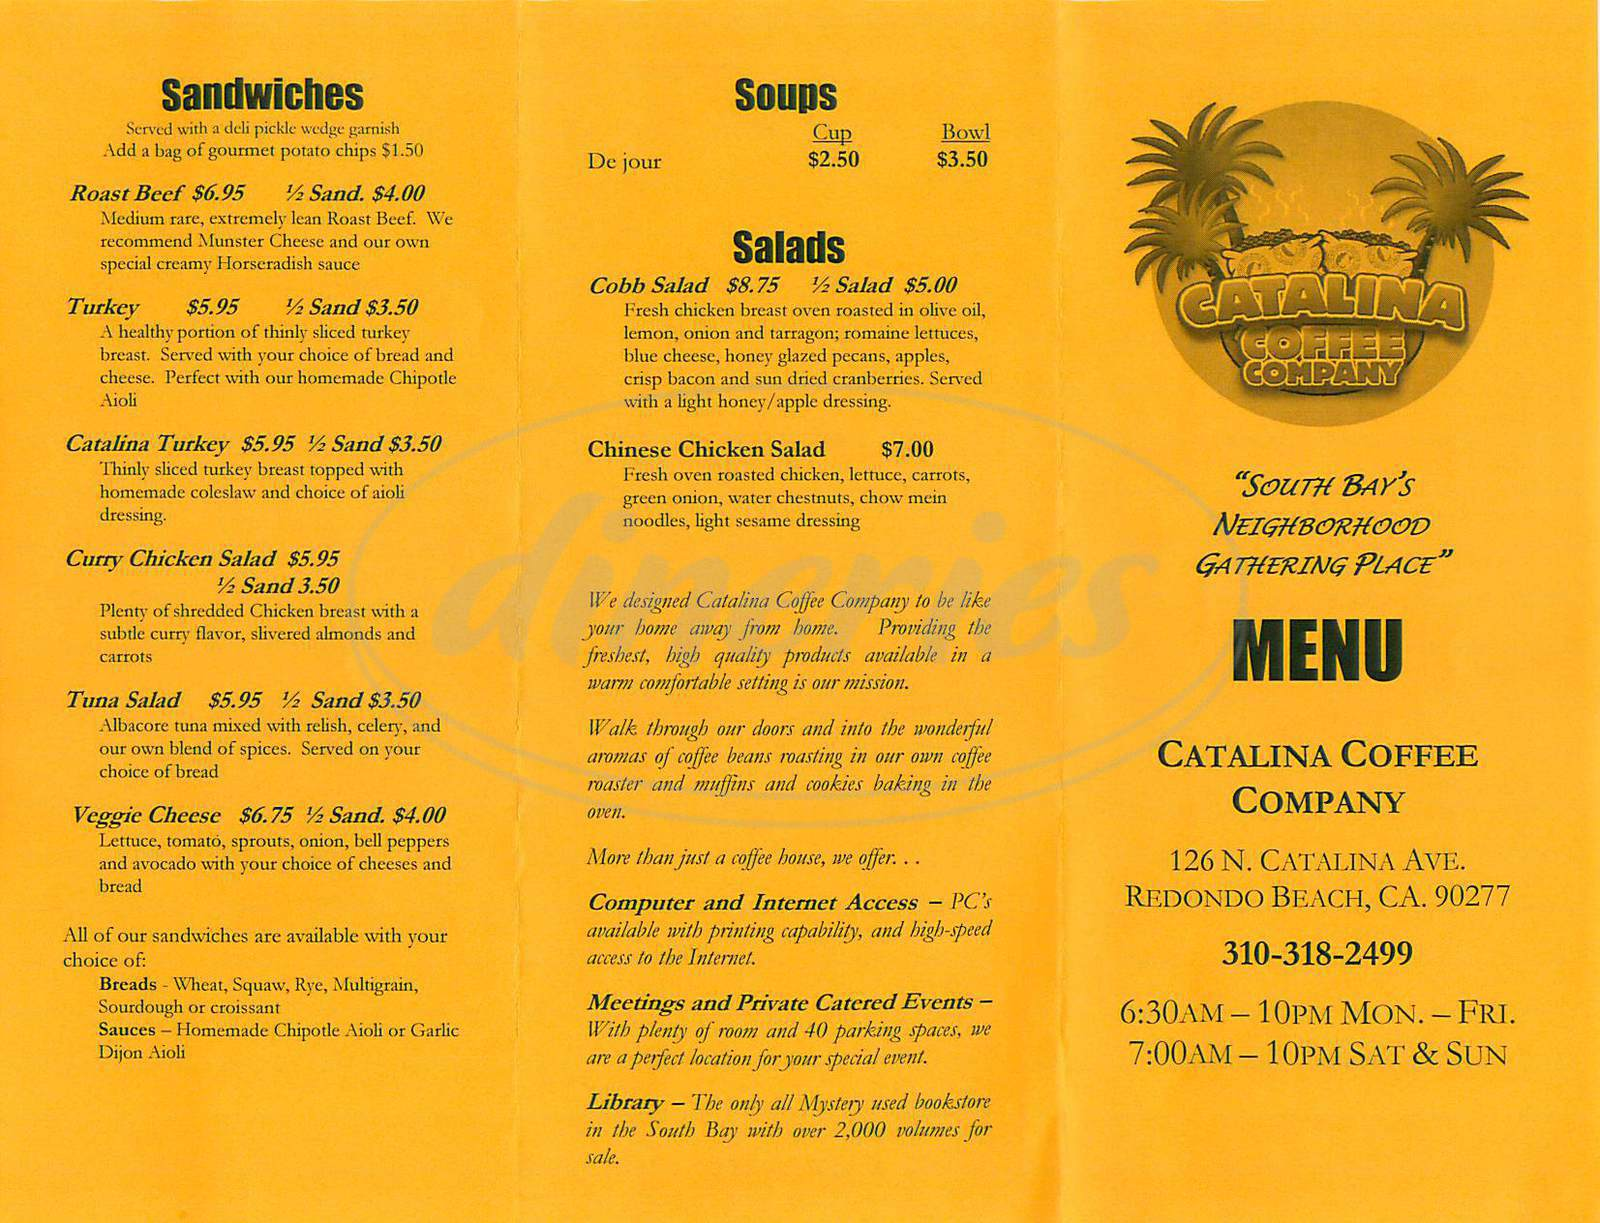 menu for Catalina Coffee Company